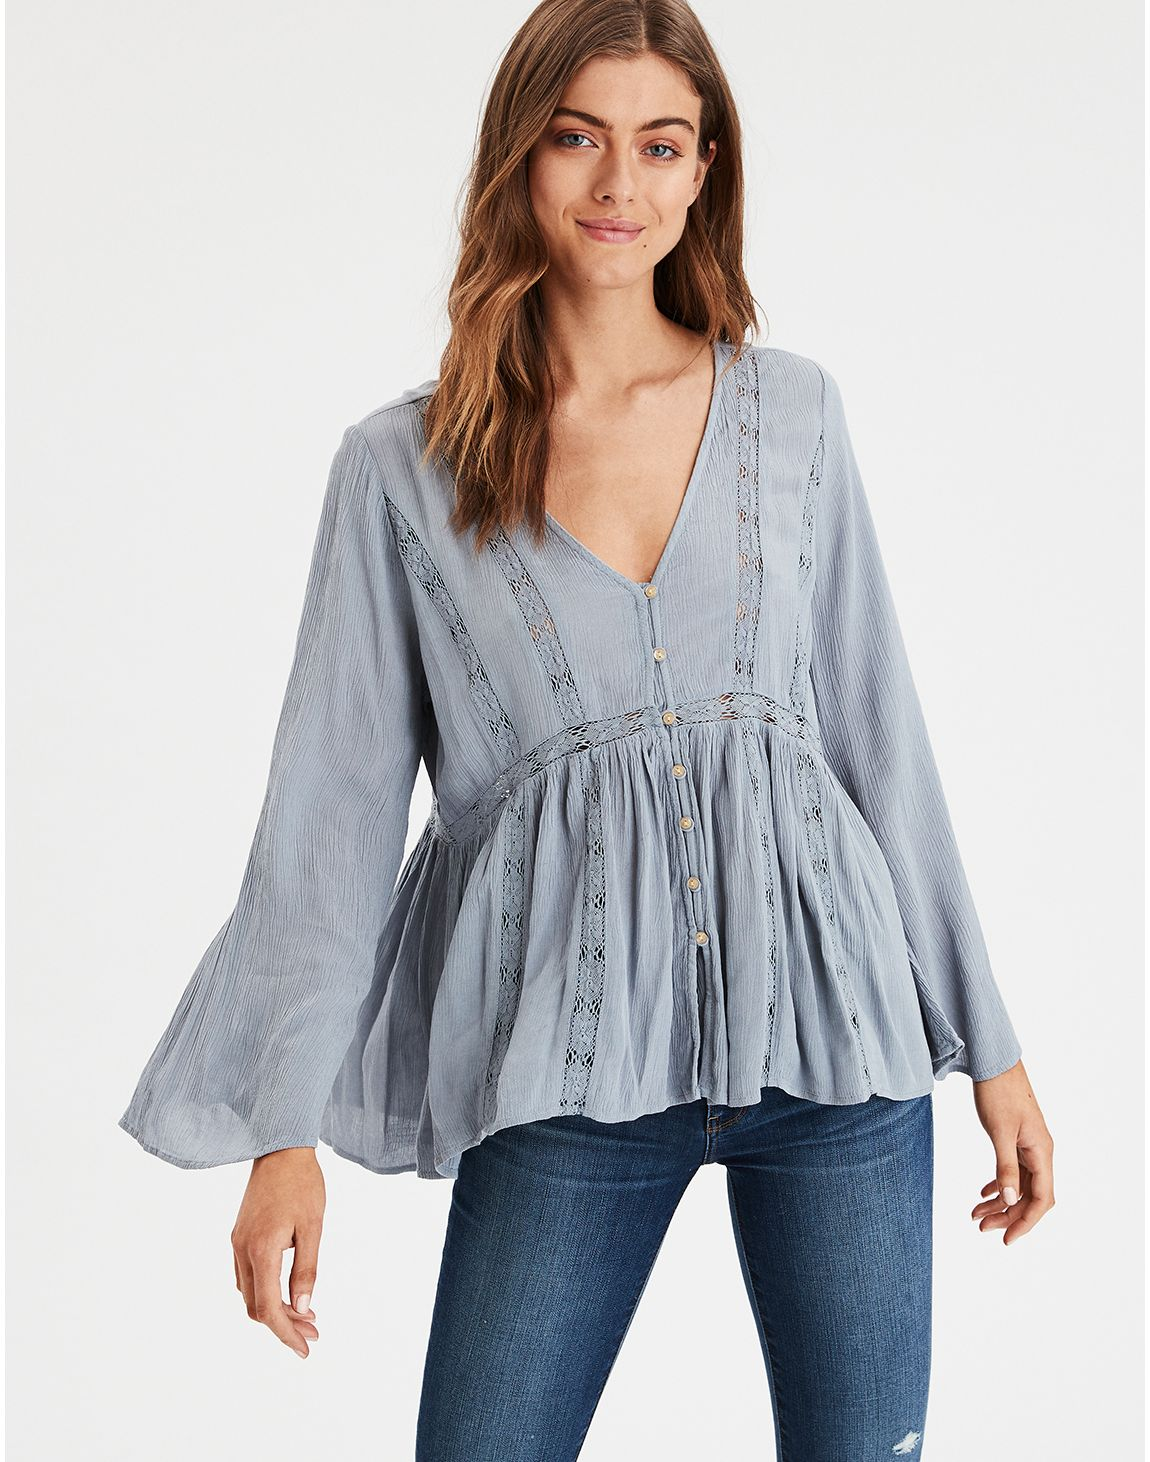 5d5acb572b23 American Eagle | AE Lace Inset Long Sleeve Tunic in Blue | American ...